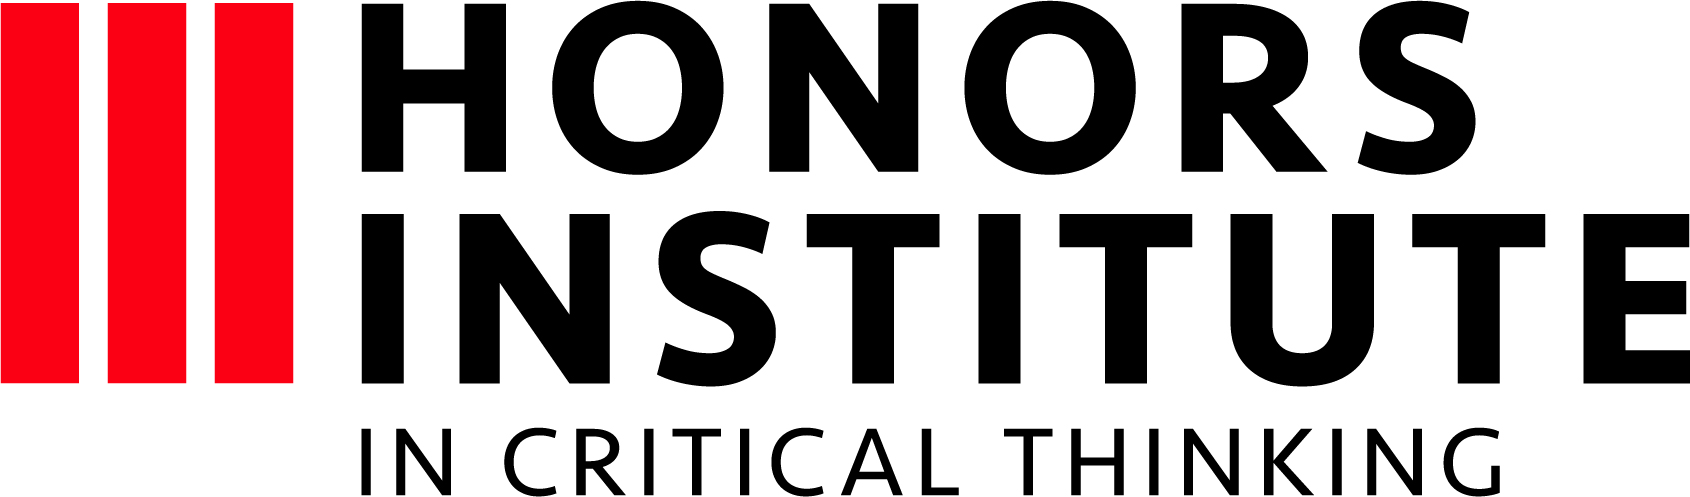 Honors Institute in Critical Thinking logo